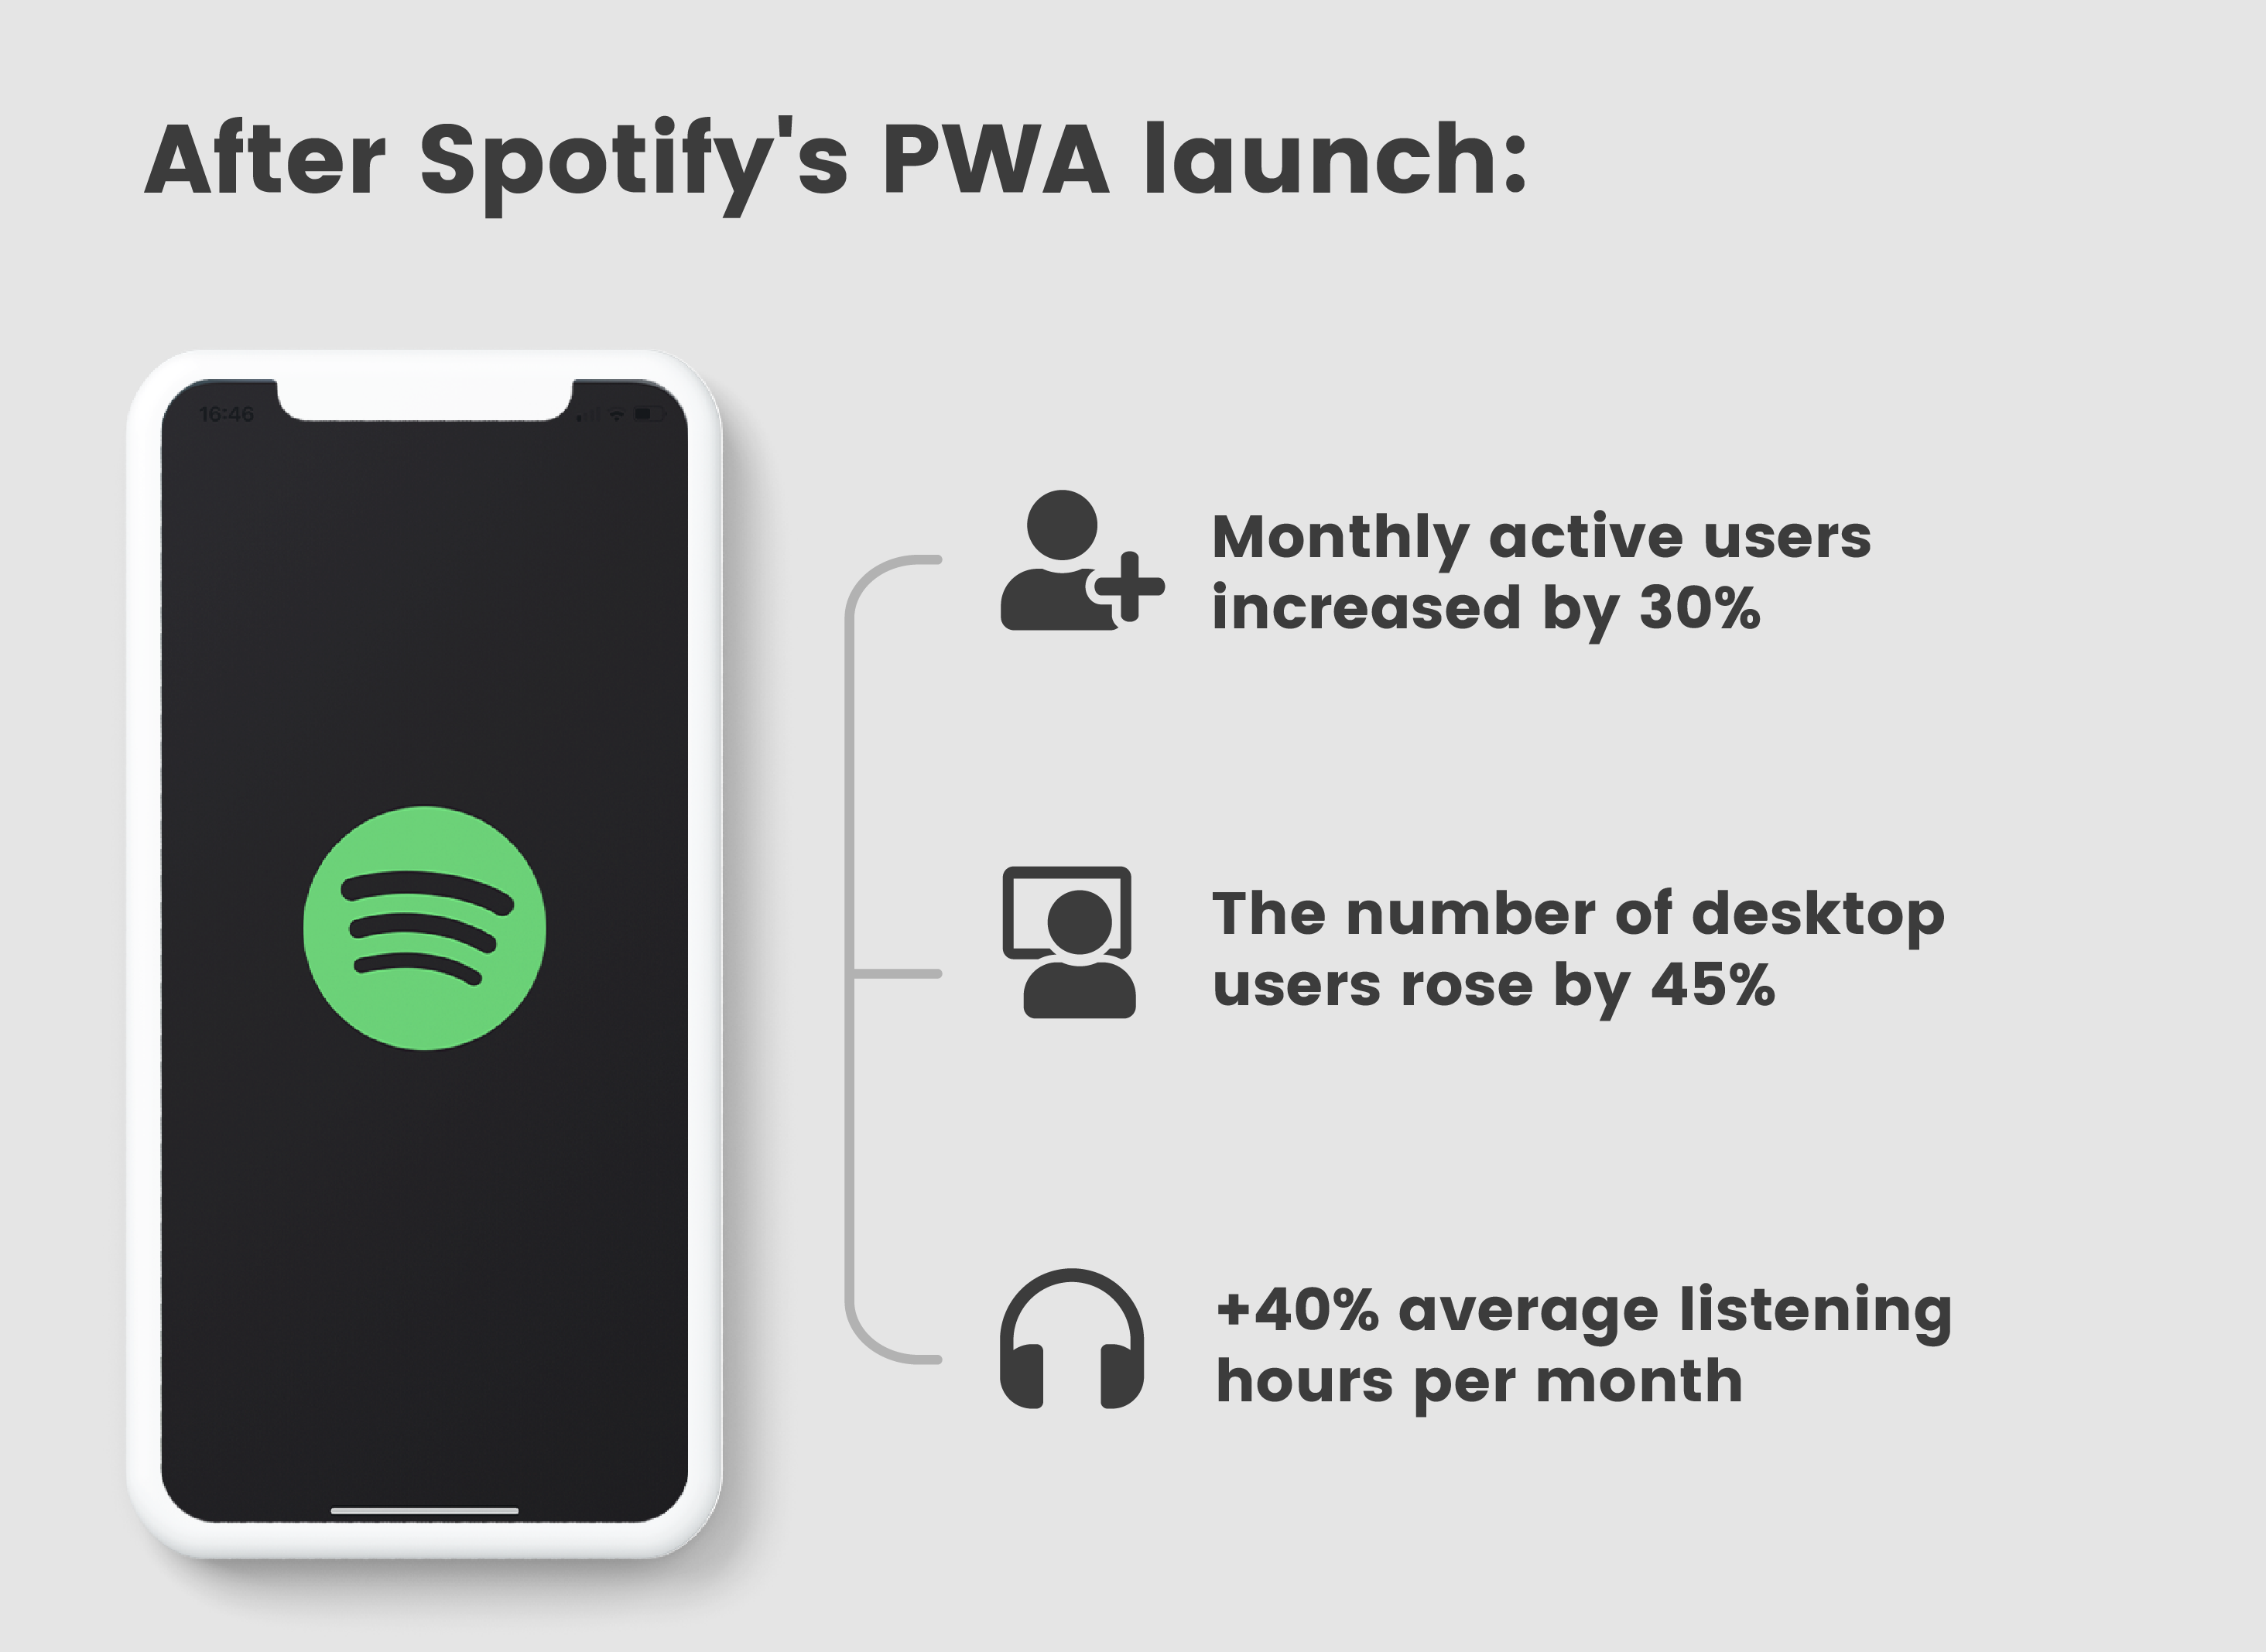 PWA Blog - Spotify Case Study - in text image